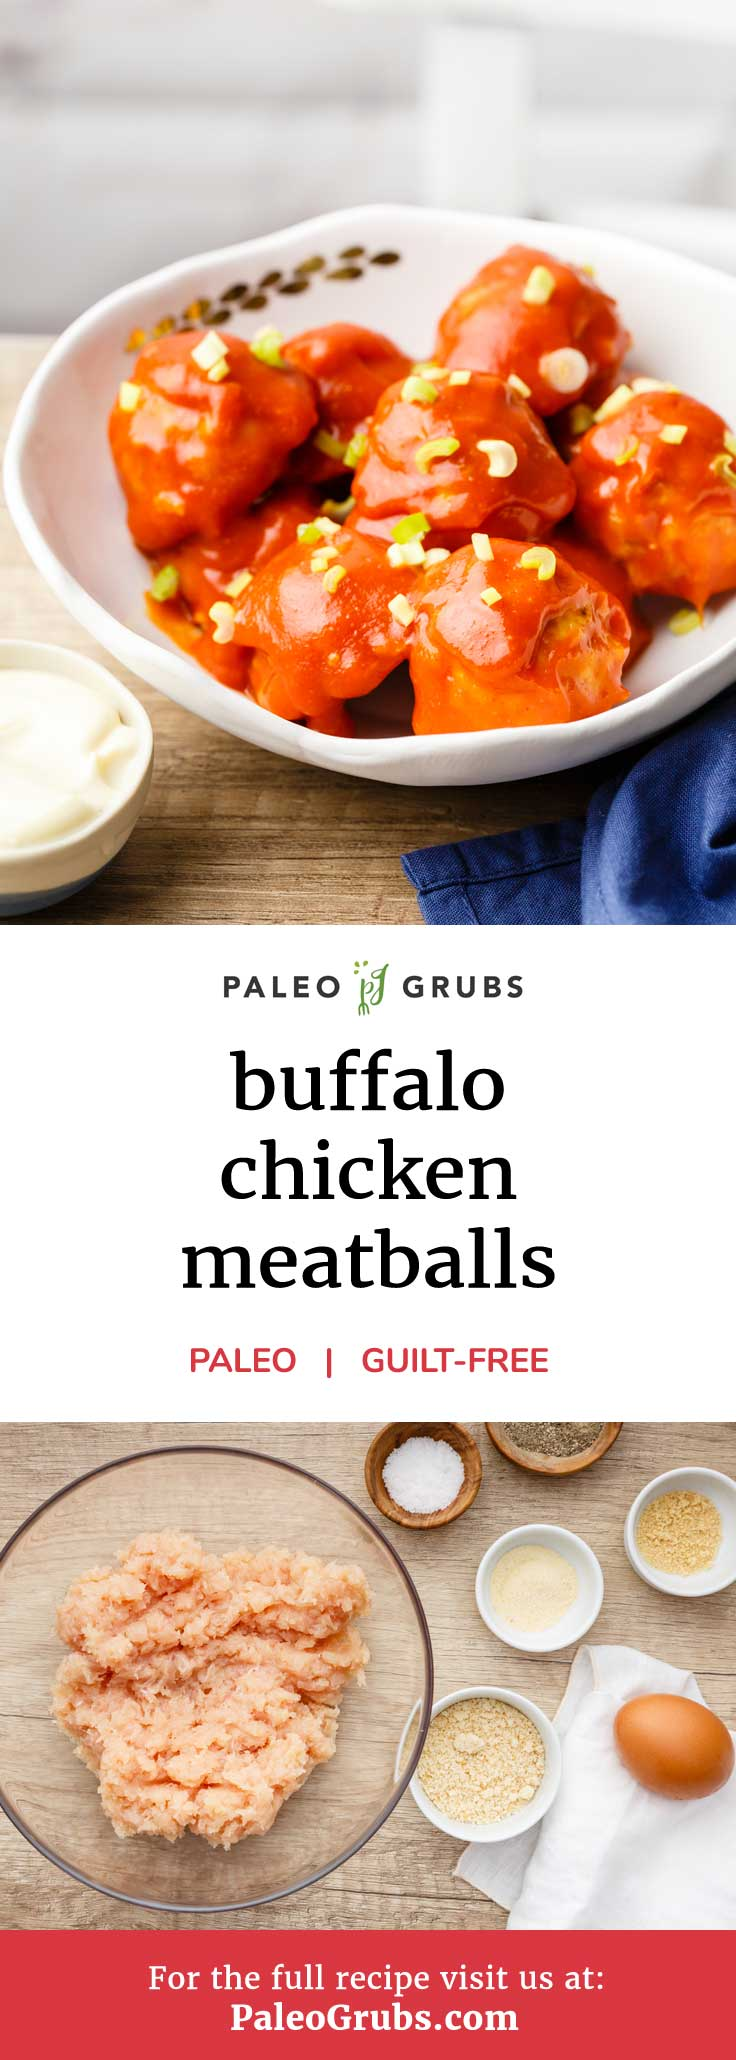 If you're a fan of that classic great taste that buffalo chicken offers, then you're going to absolutely love this paleo recipe. These buffalo chicken meatballs are made entirely from scratch. We're talking the meatballs themselves and the unbelievably tasty buffalo sauce. As if meatballs weren't already addictive enough on their own!